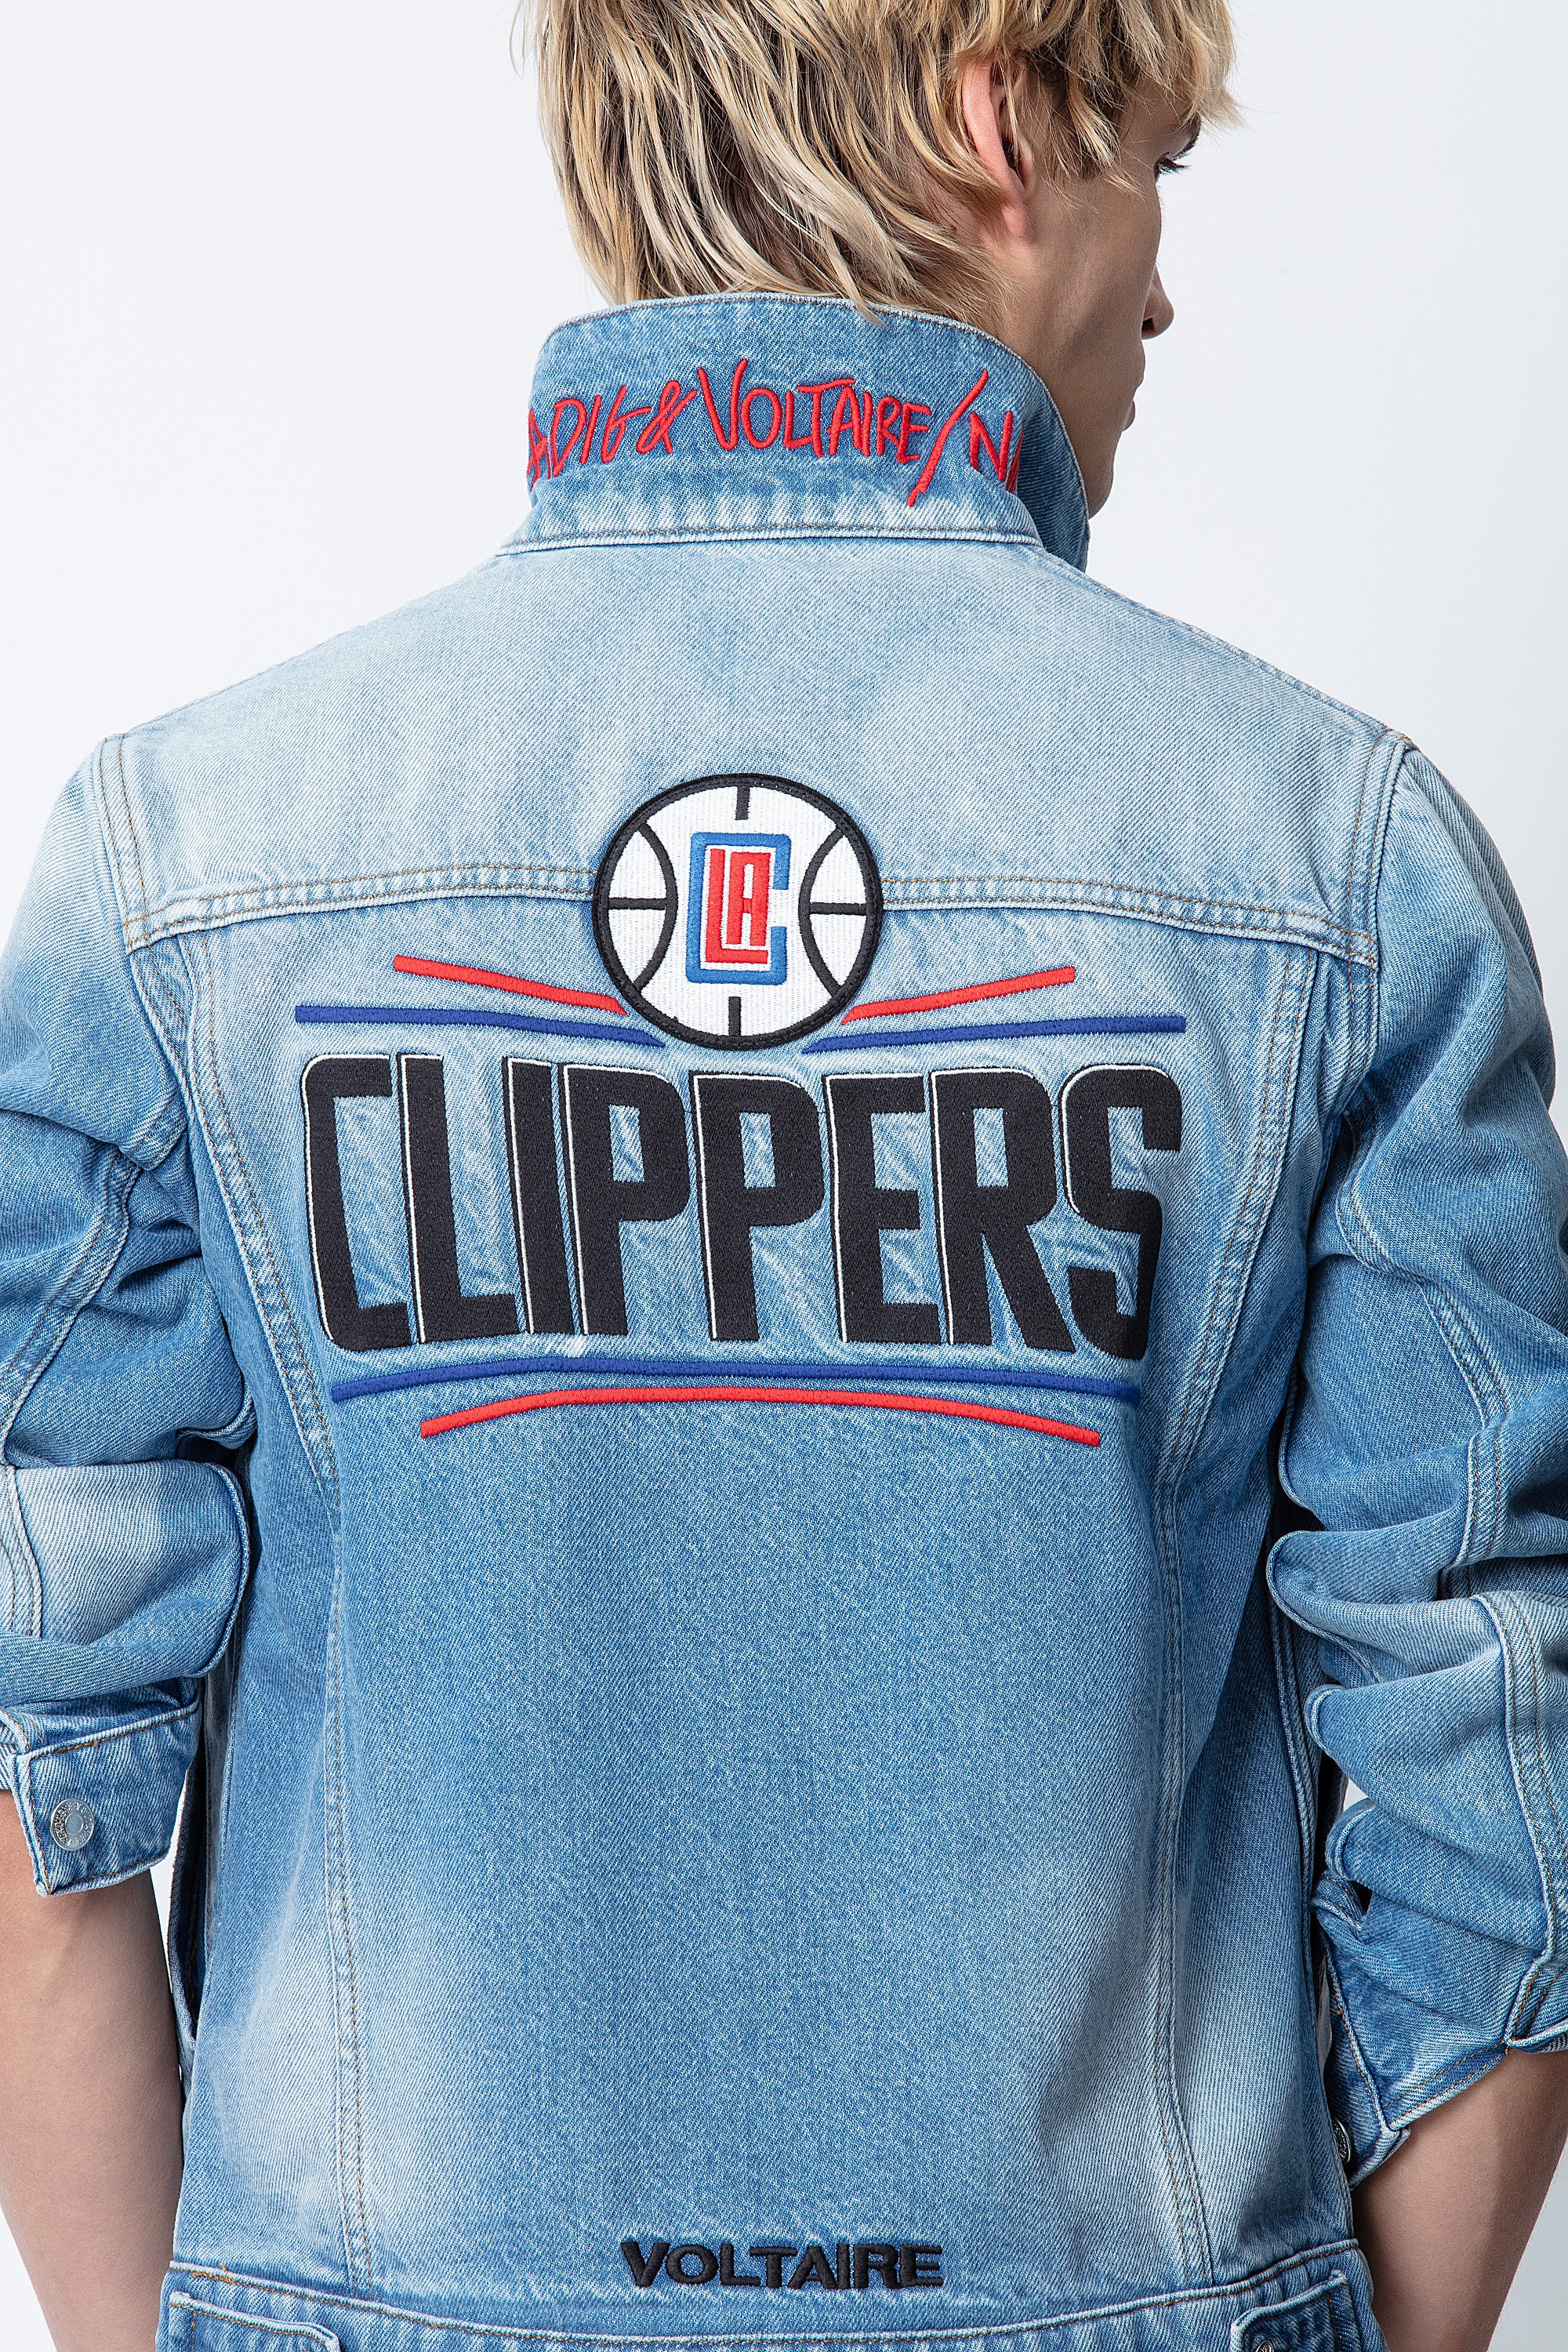 Base LA Clippers Jacket